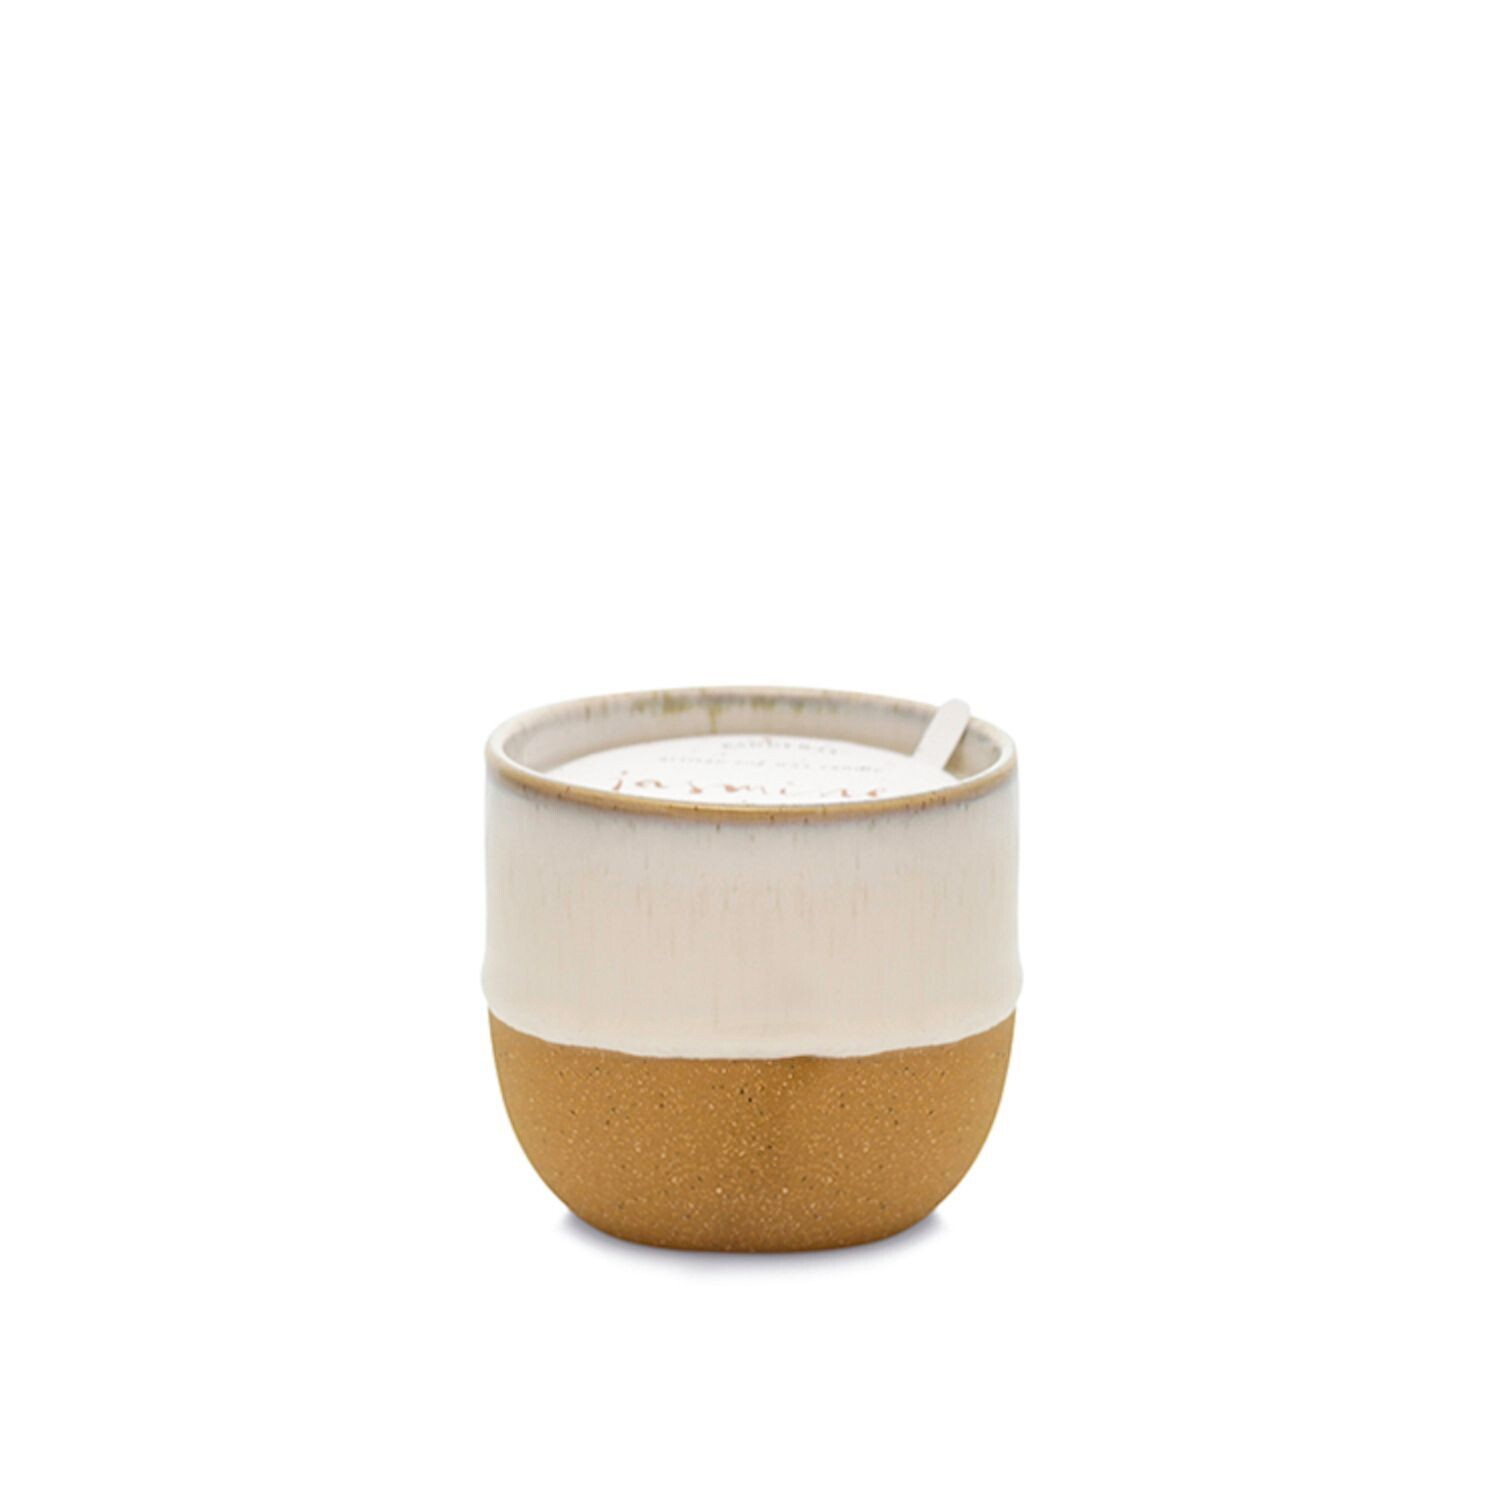 KIN White Artisan Soy Wax Candle - Jasmine and Bamboo - Small